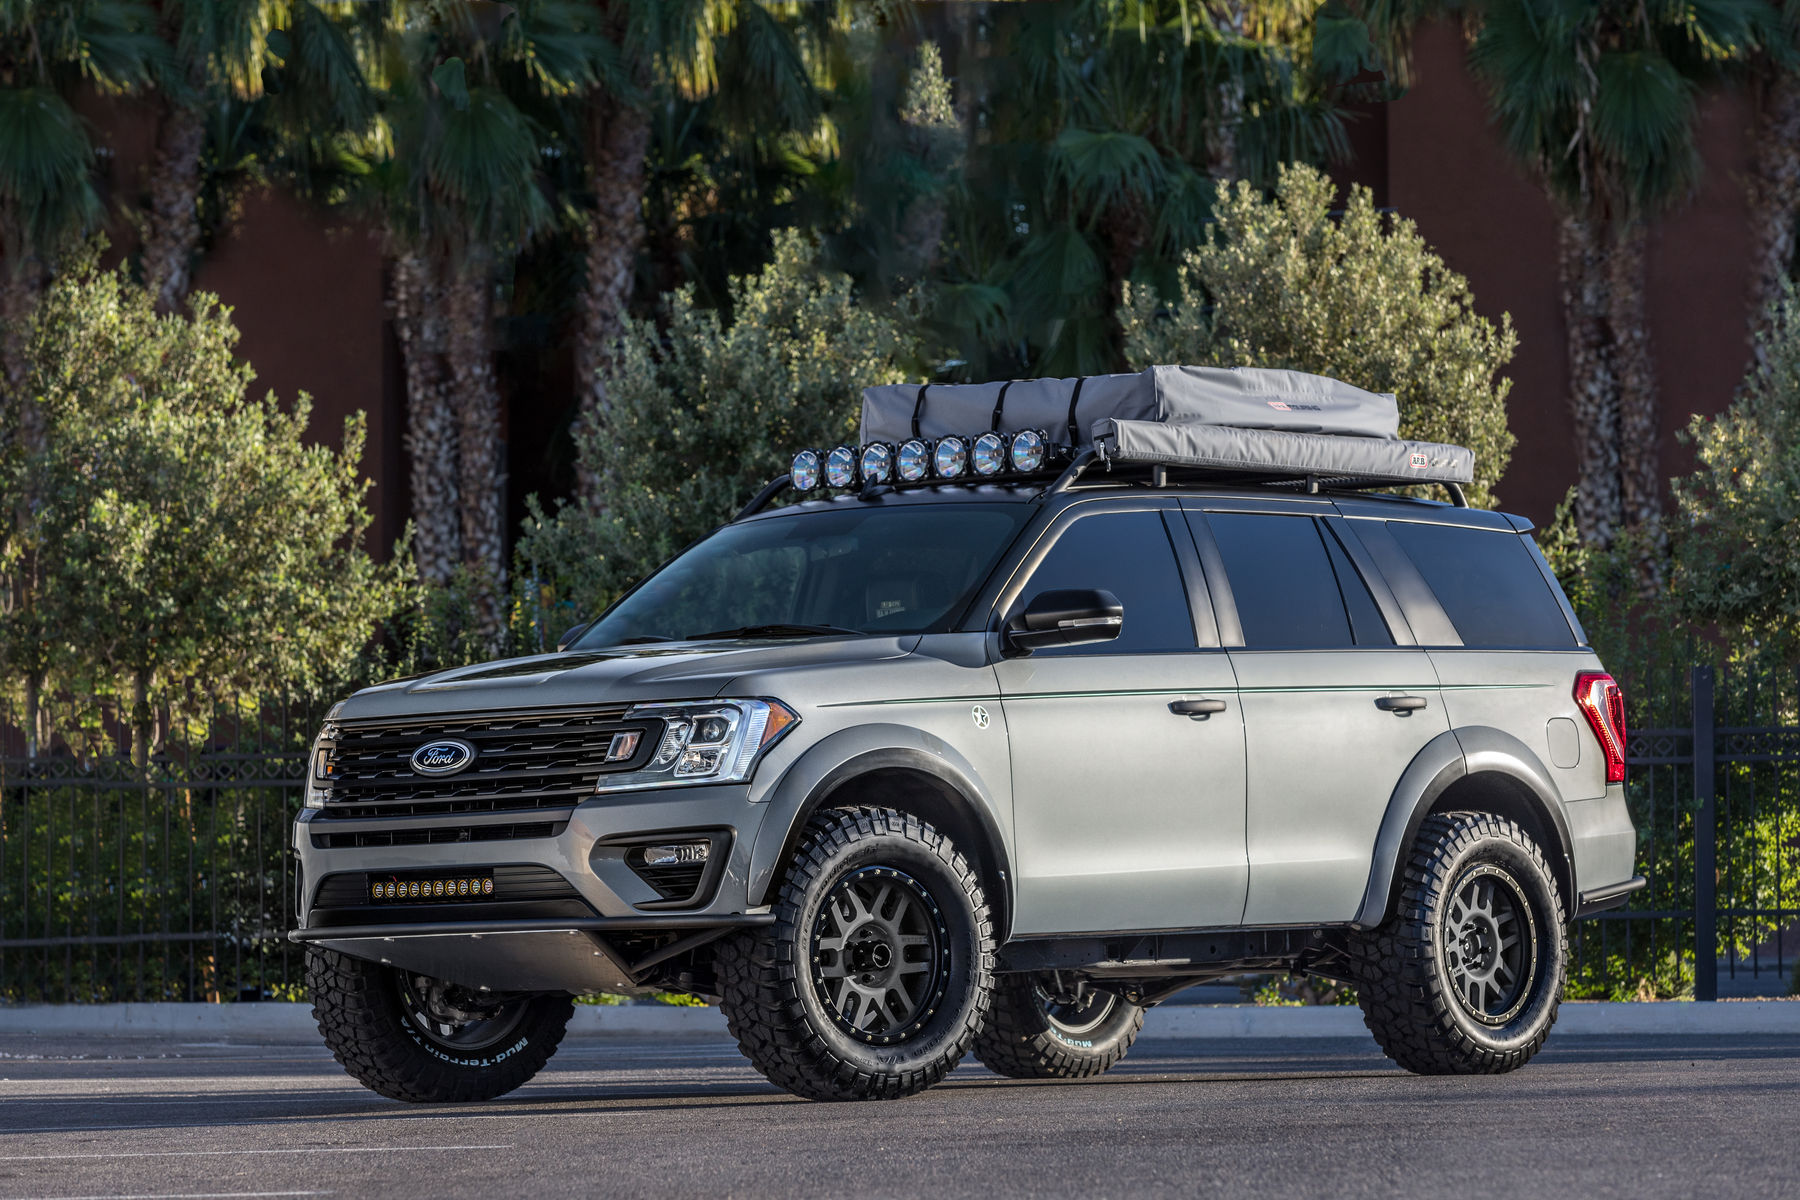 2018 Ford Expedition By Lge Cts Motorsports Stance Shot